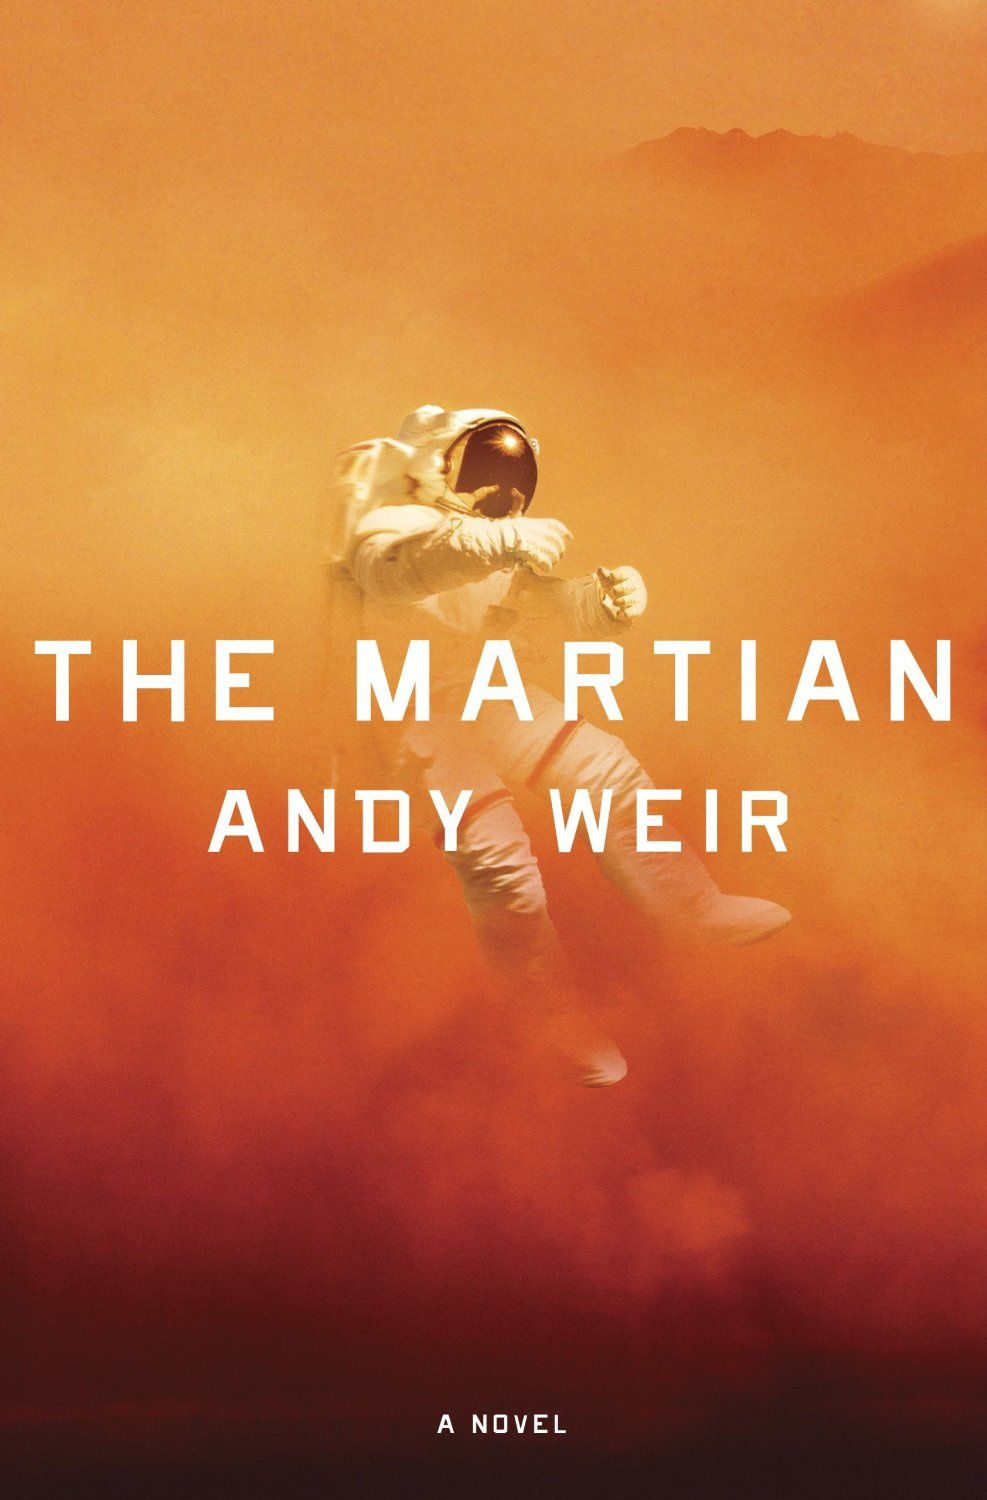 The Martian de Ridley Scott avec Matt Damon, Jessica Chastain, Michael Peña - 02 12 2015